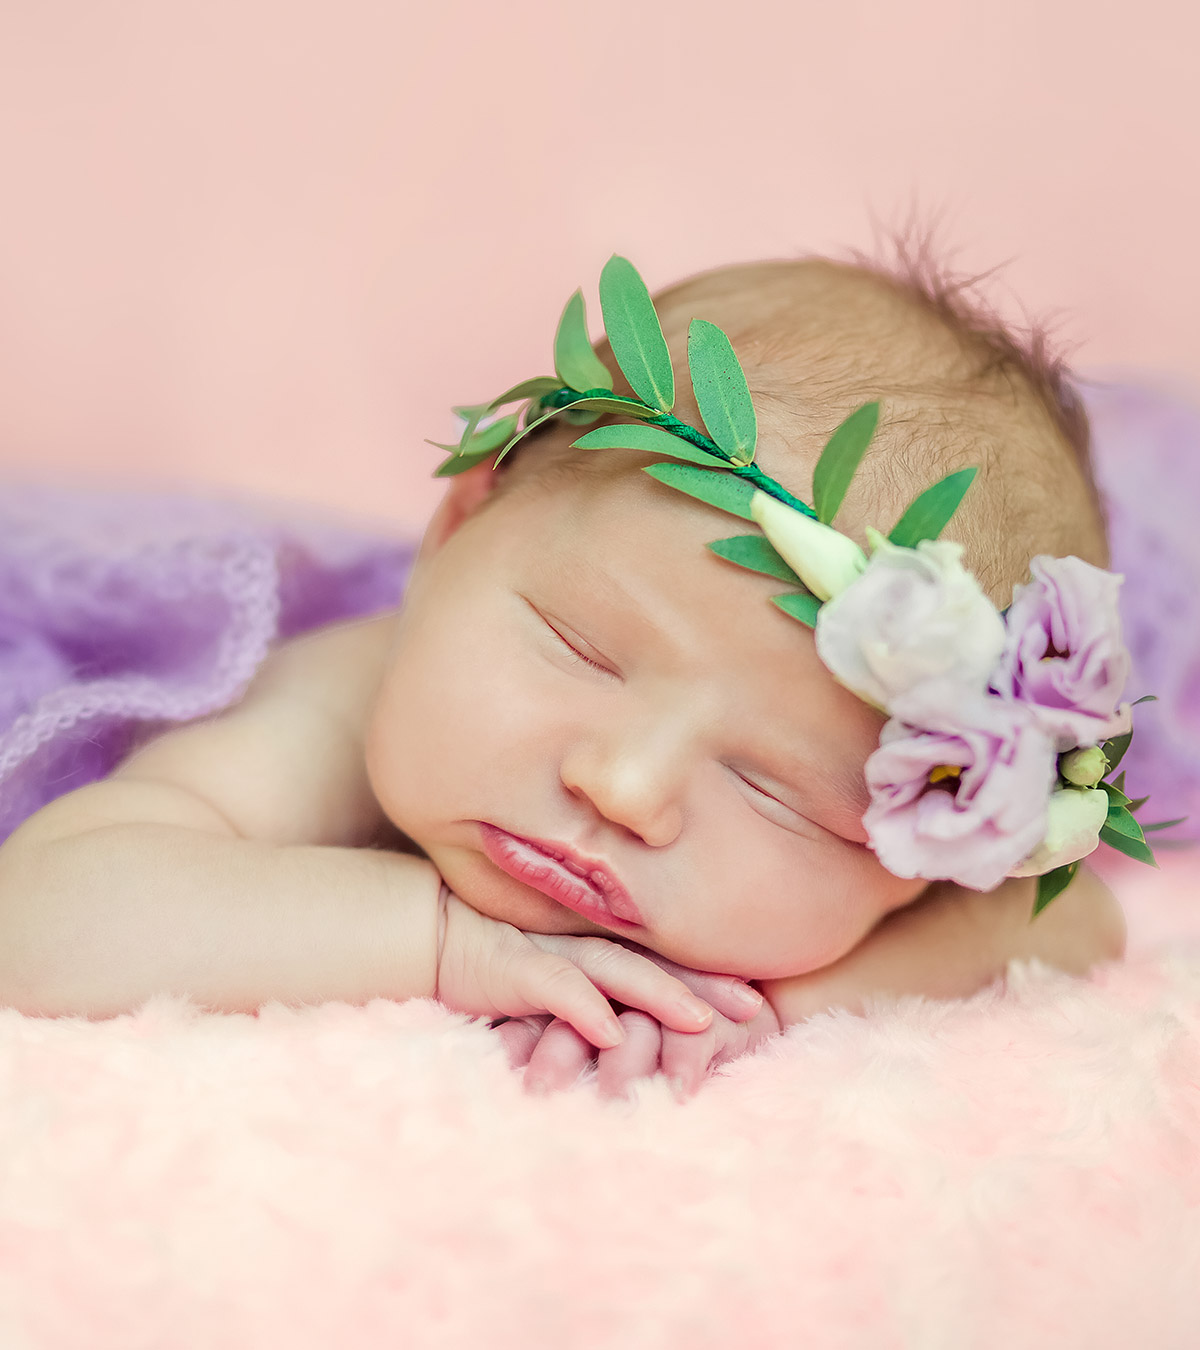 132 Baby Names That Mean Mercy | MomJunction